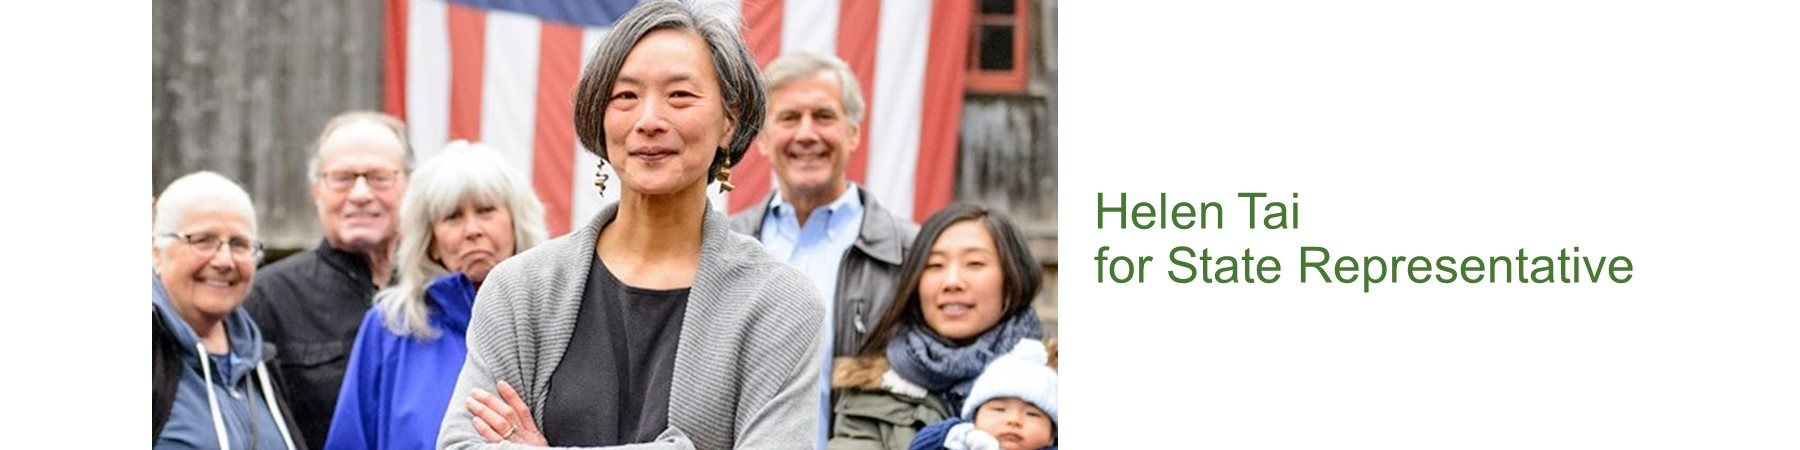 HELEN TAI for PA State Representative